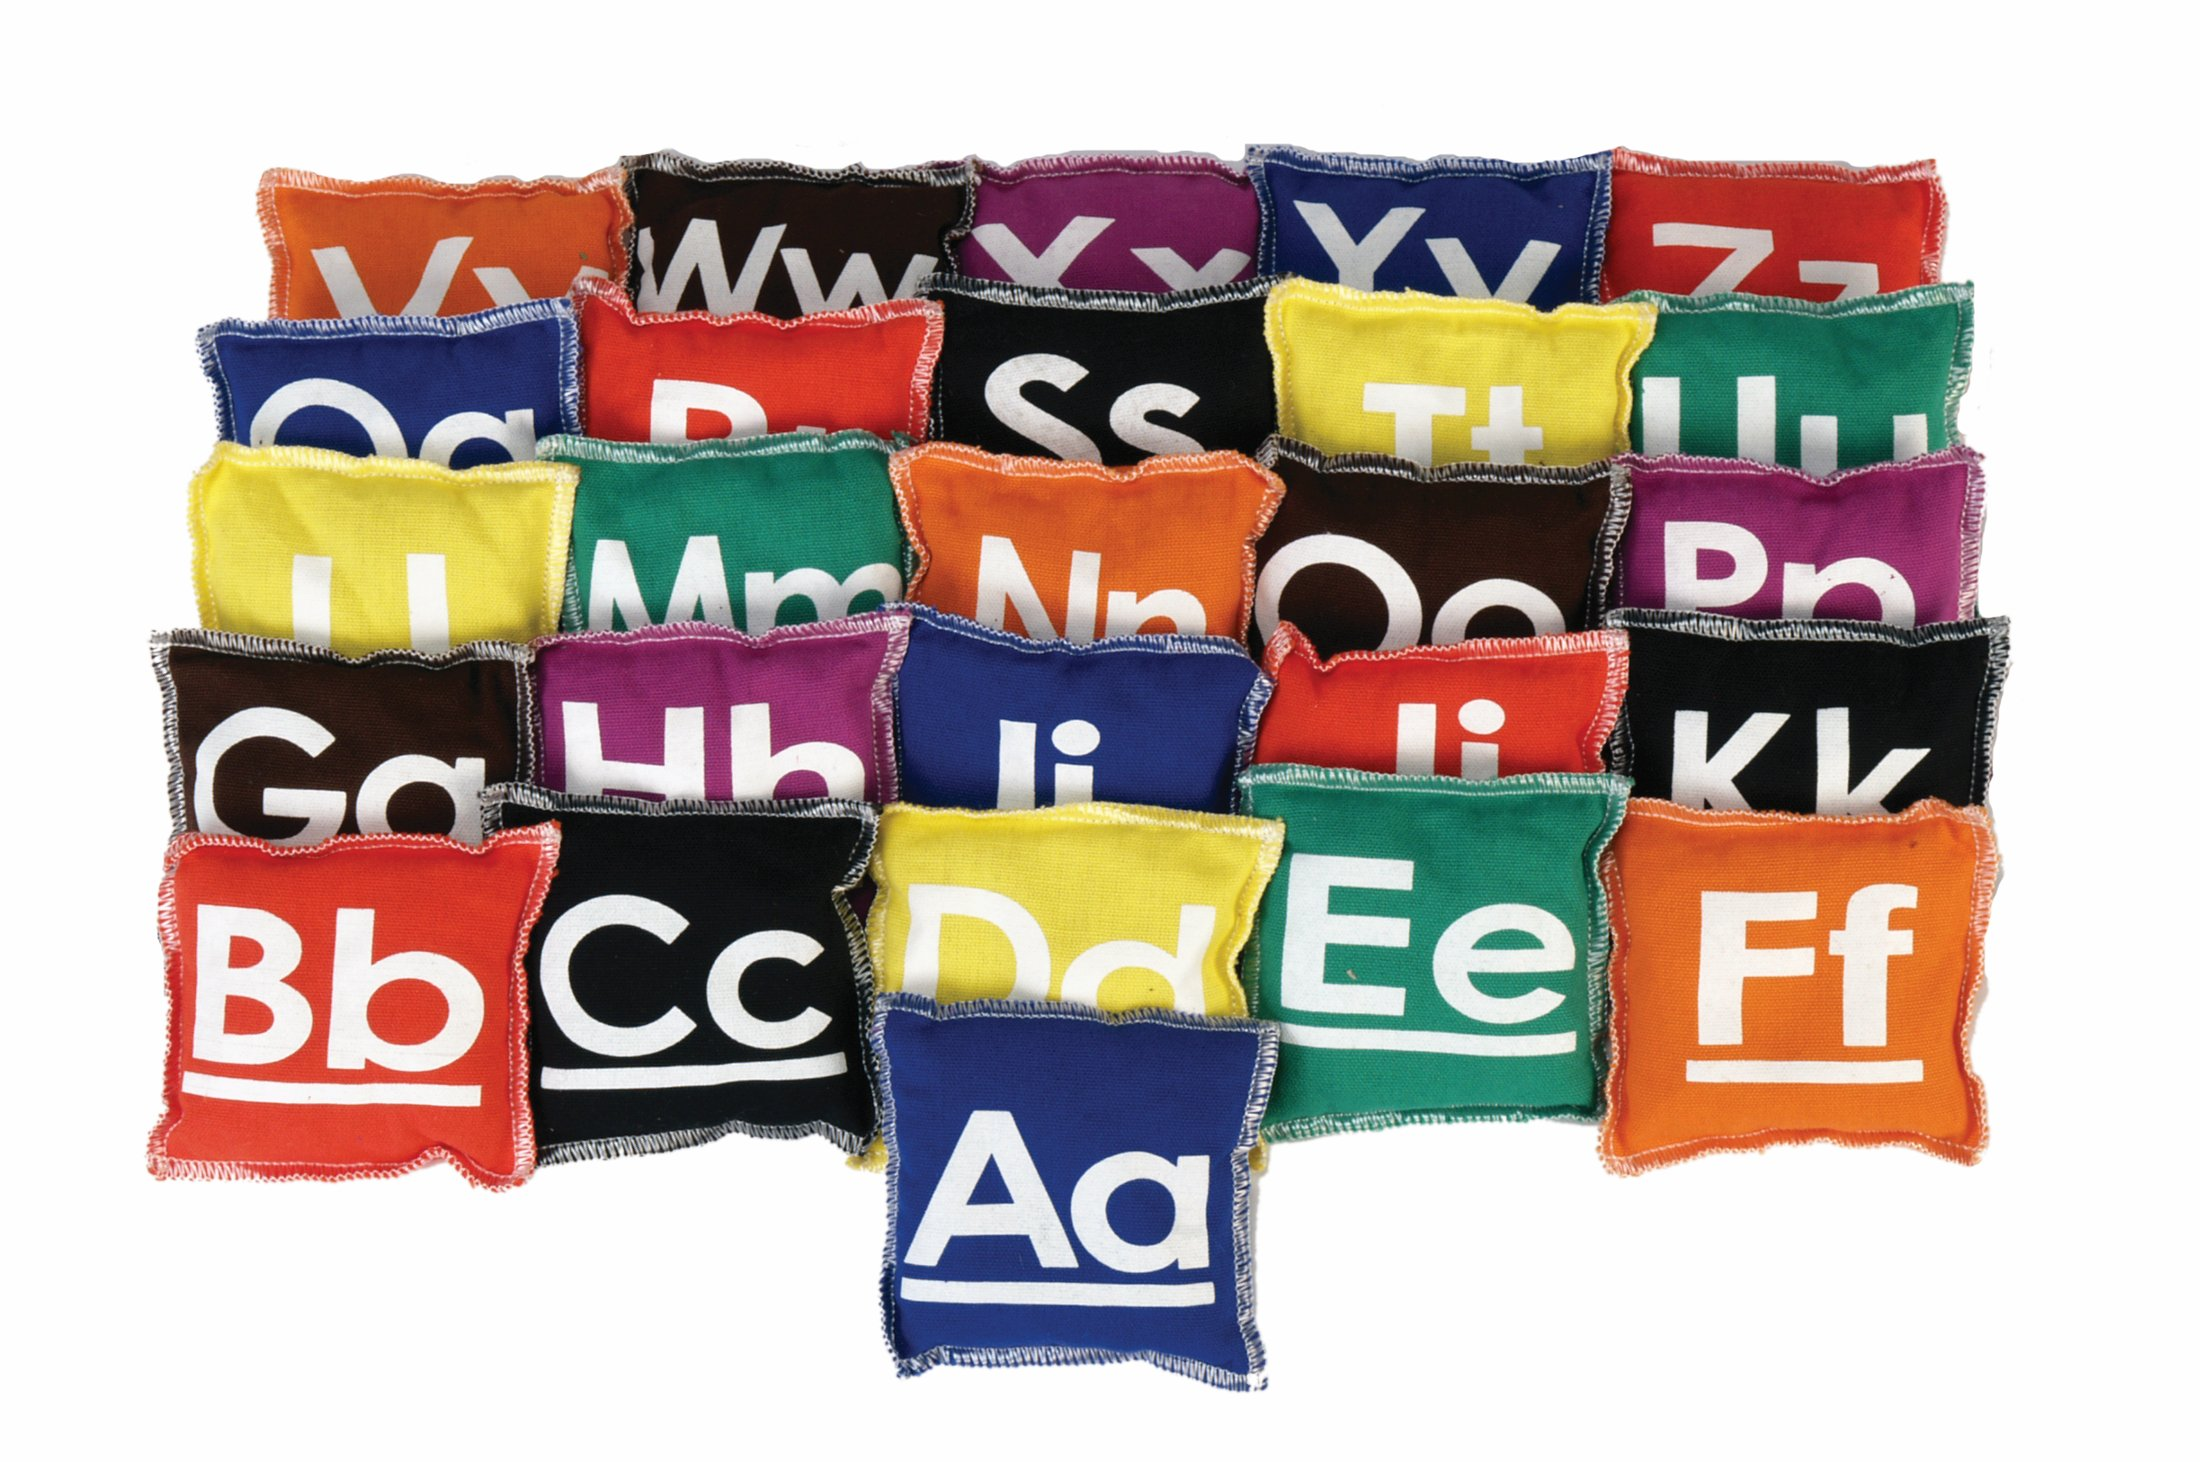 American Educational Products Alphabet Beanbags, 4 x 4'', Set of 26